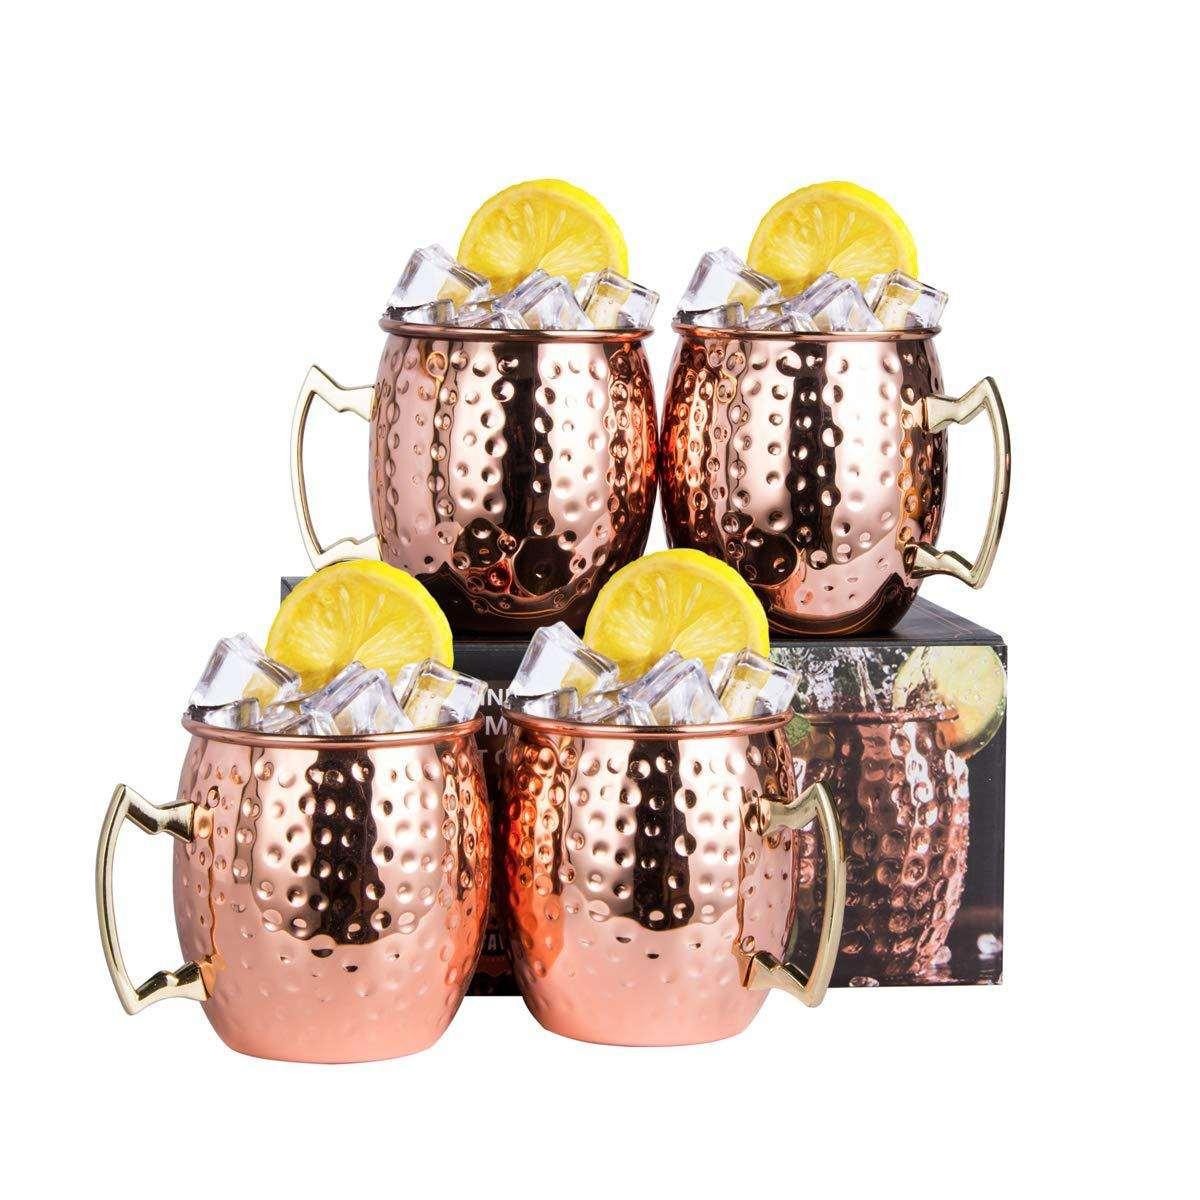 Amazon Moscow Mule Copper Mugs Set von 4 mit Brass Handle 18 unzen Stainless Steel Lining Classic Drinking Cup